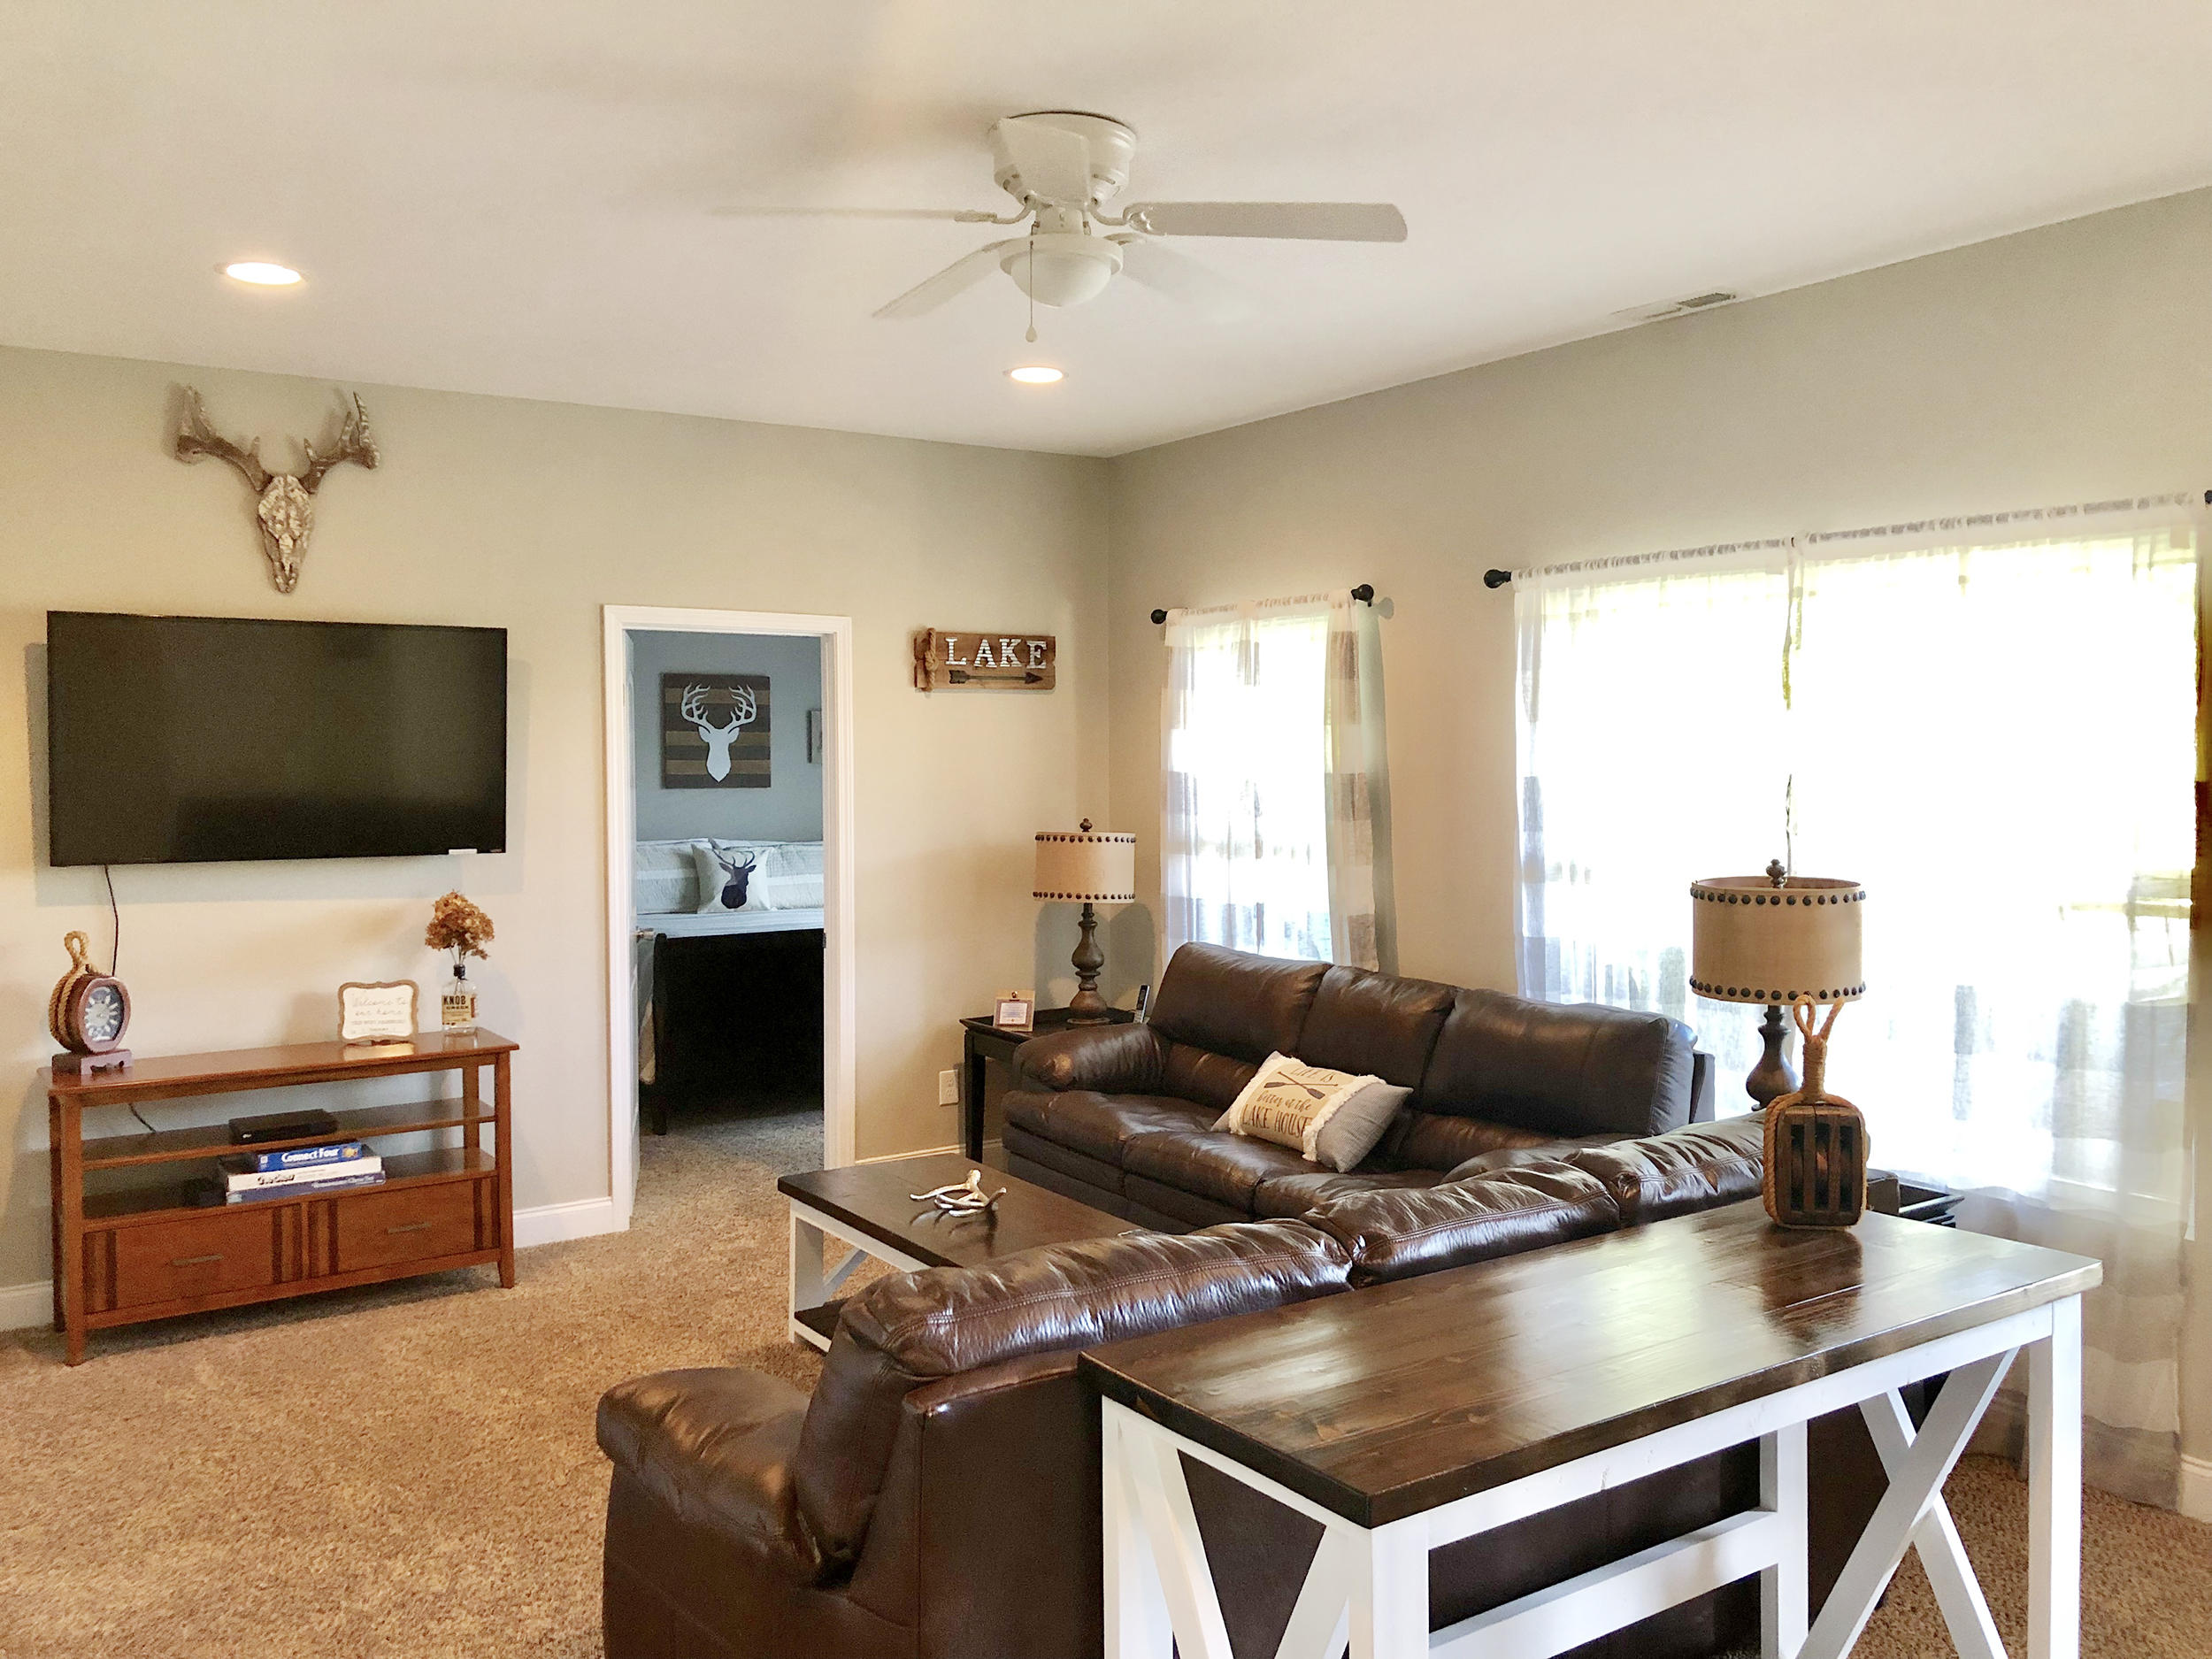 709 Waterfront Tr: